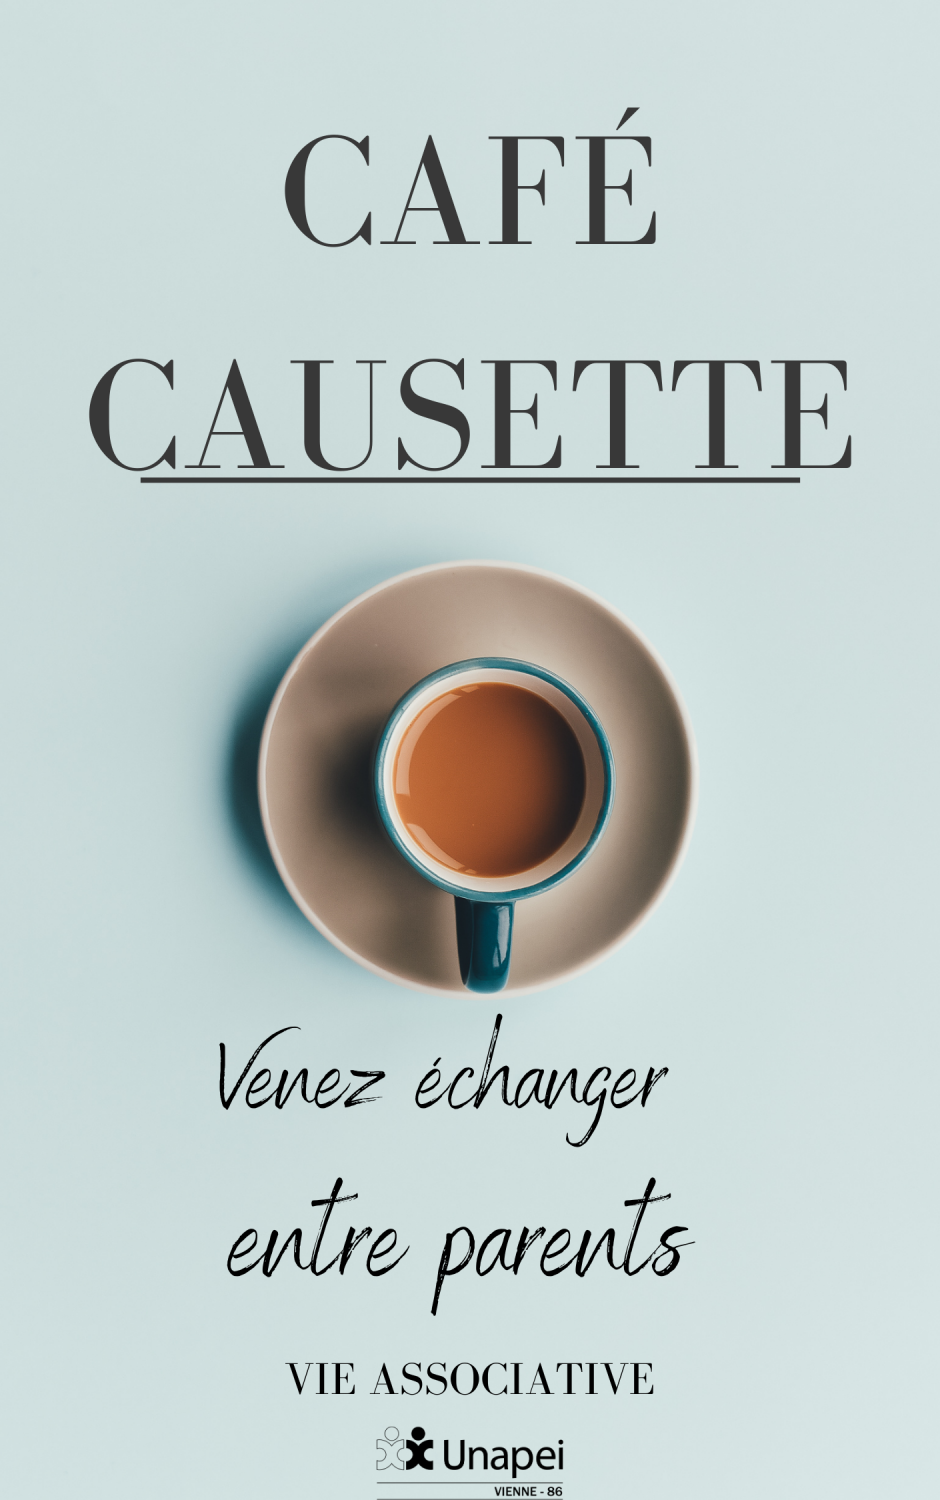 20201211130458-cafe-causette-site.png